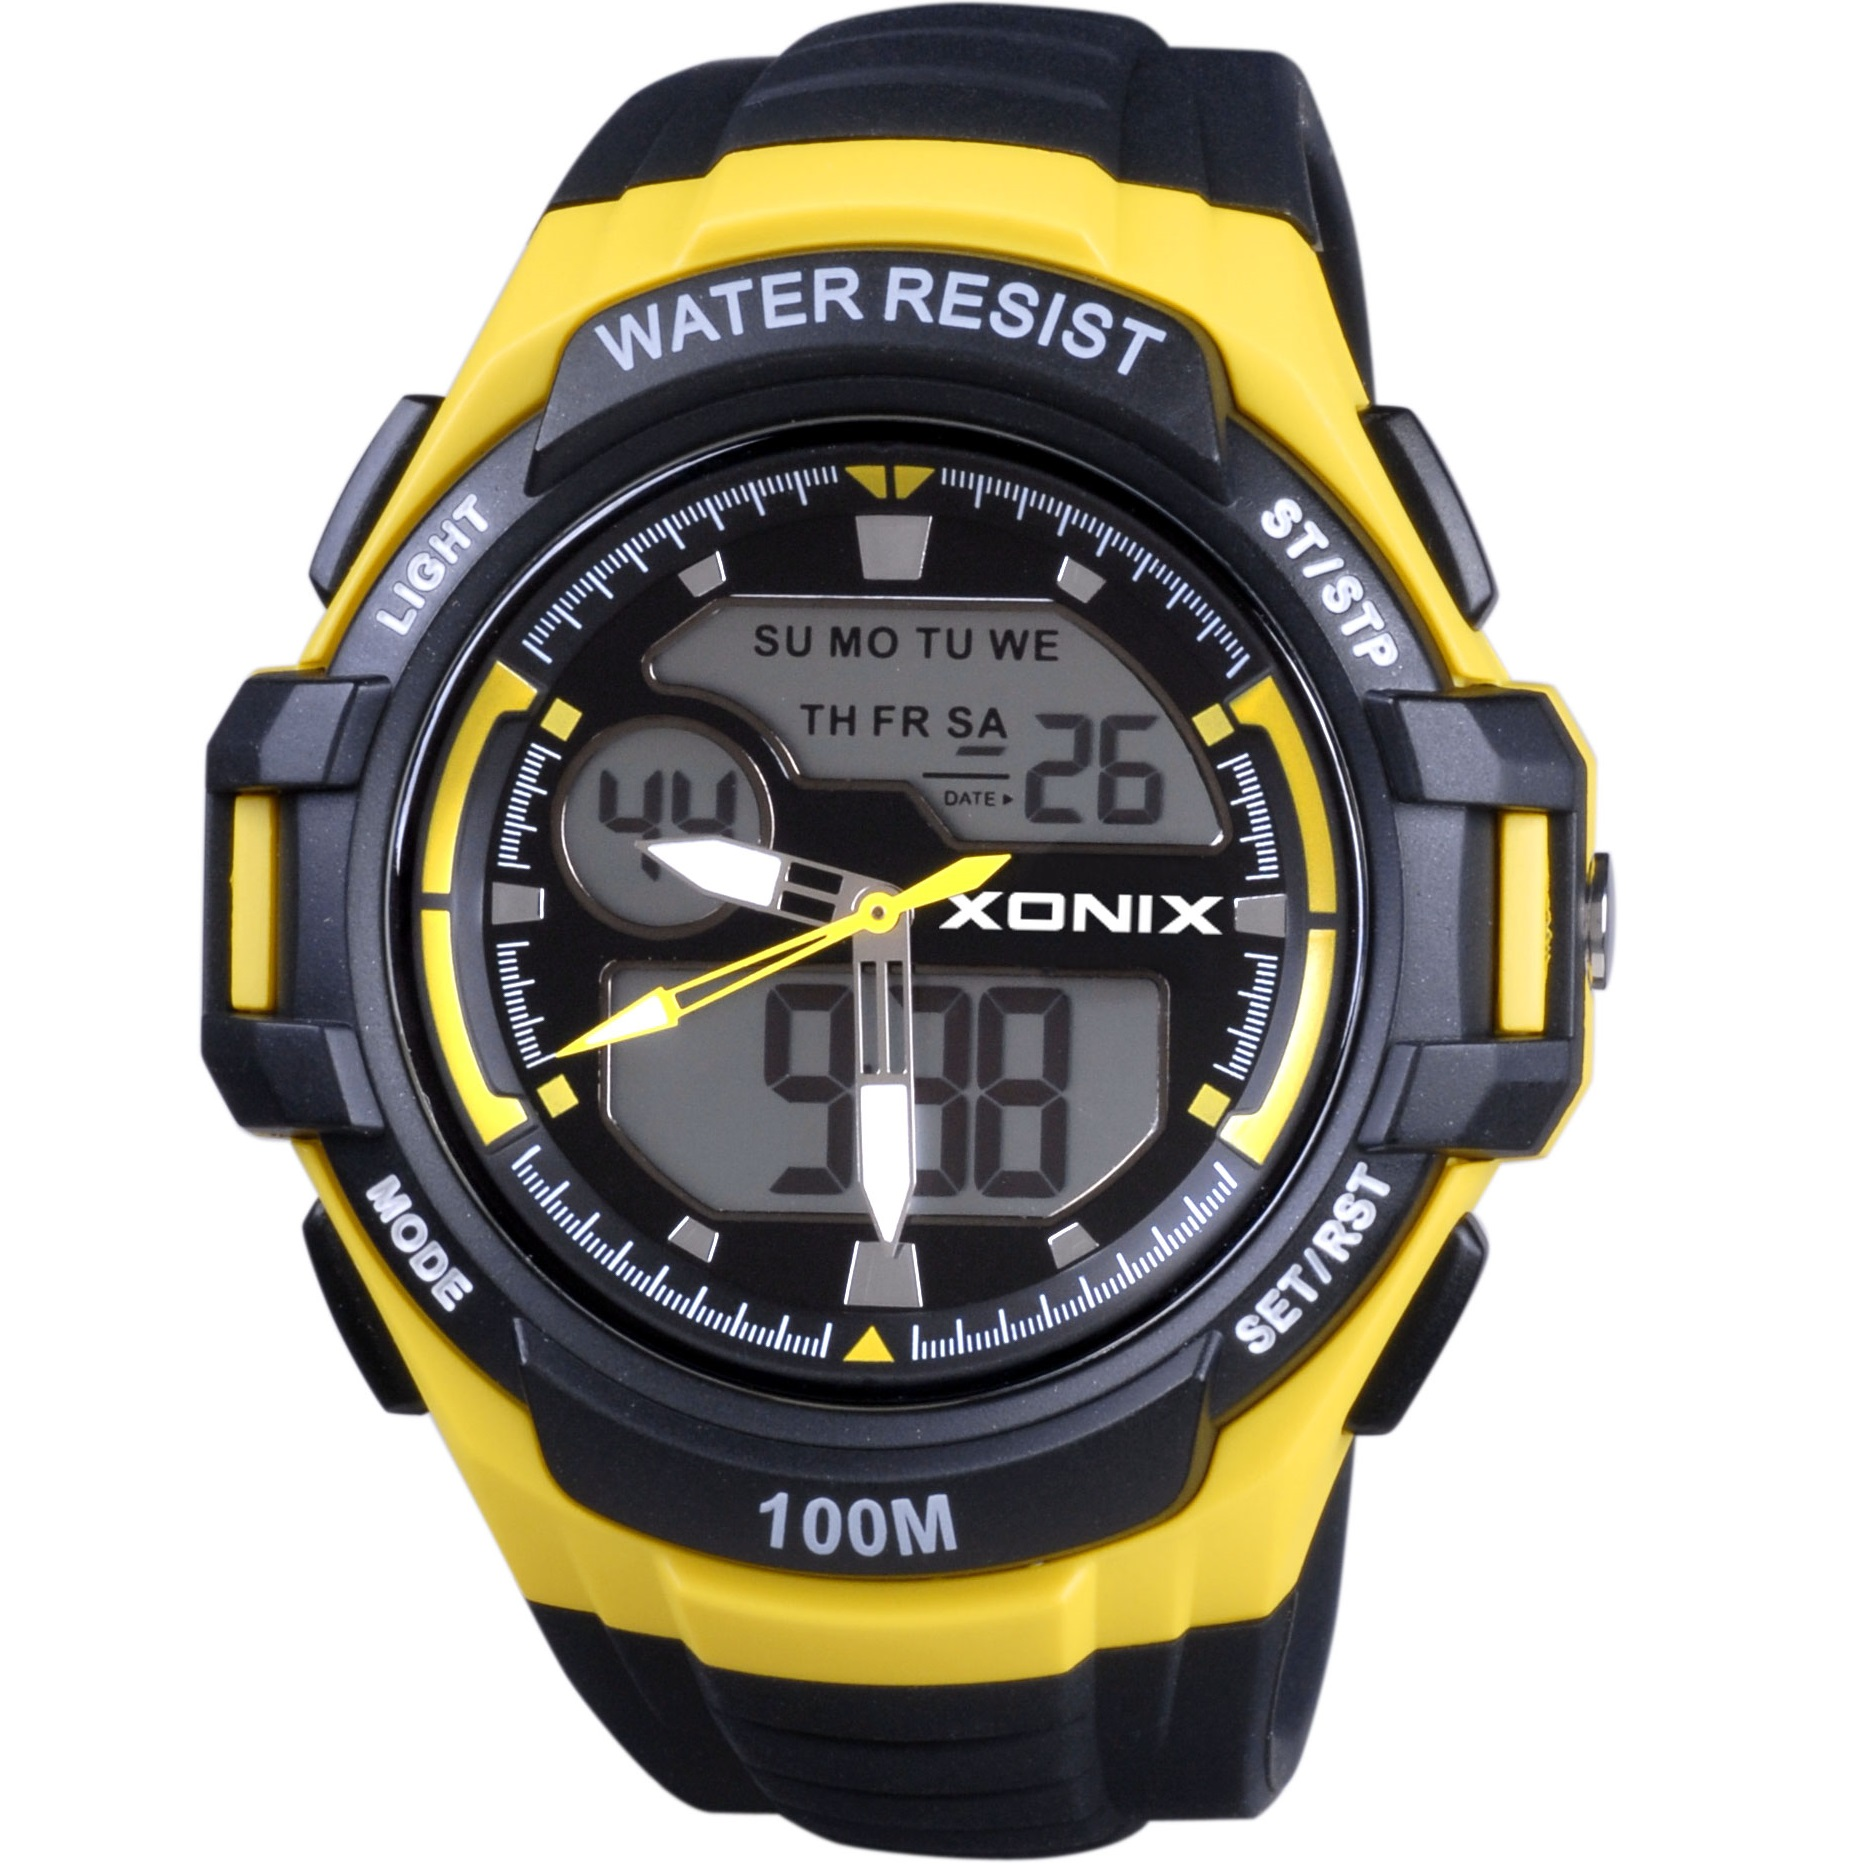 Xonix Digital Black Rubber Strap MK-003